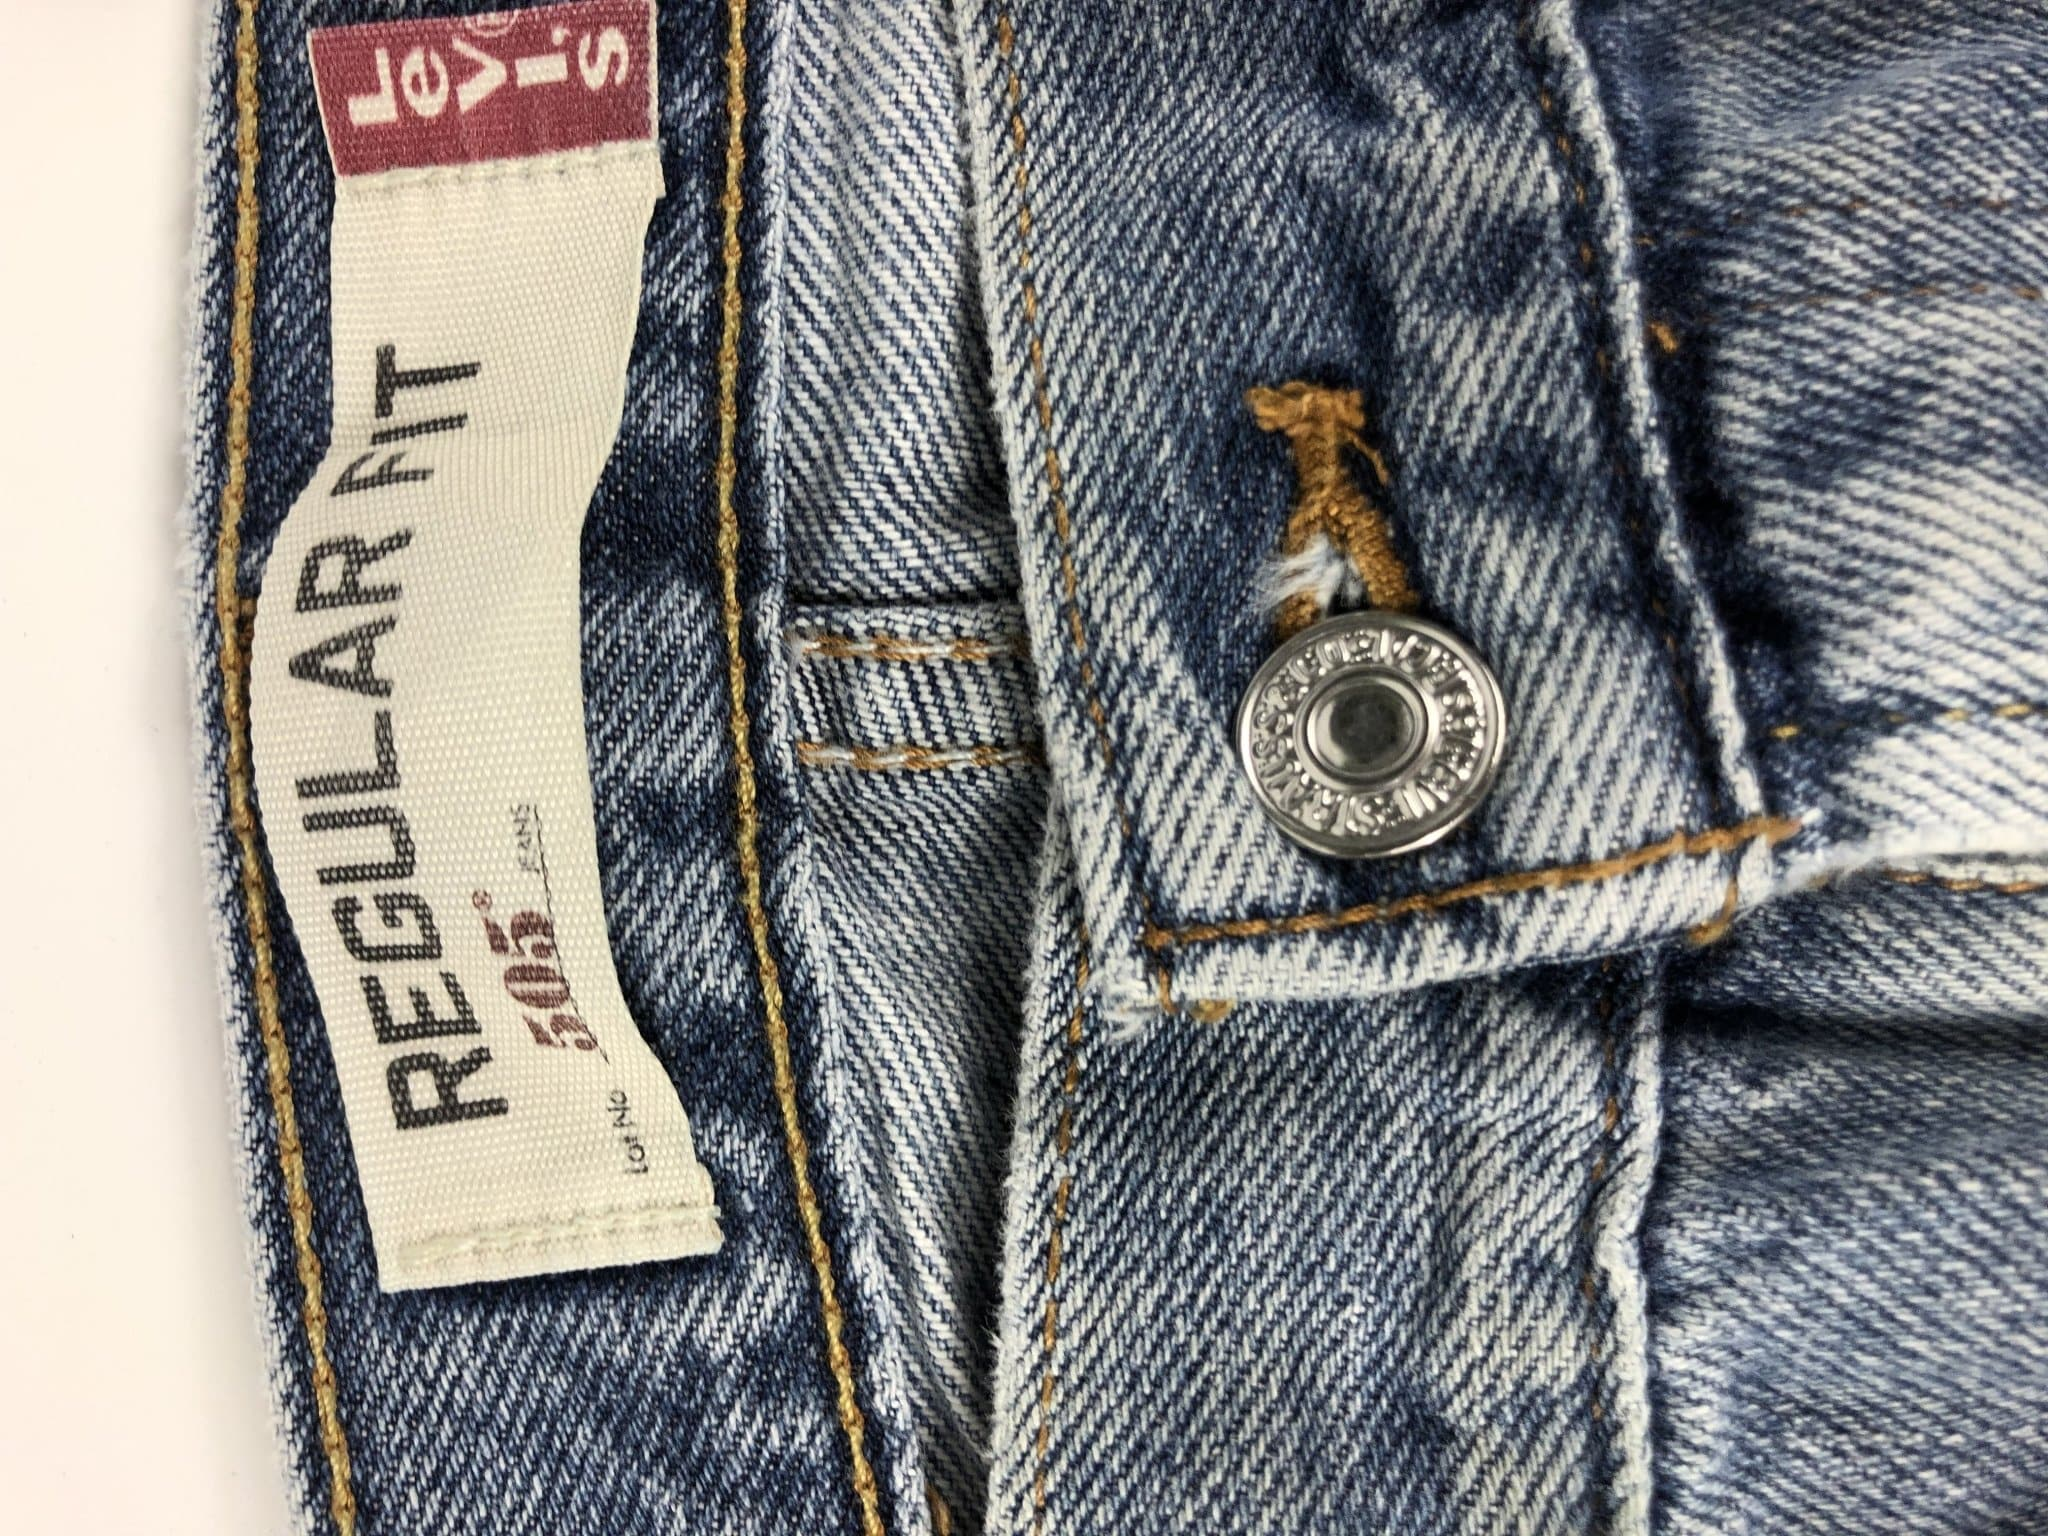 Vintage Levi's Classic 505 Jeans W36 L30 (E5) - Discounted Deals UK